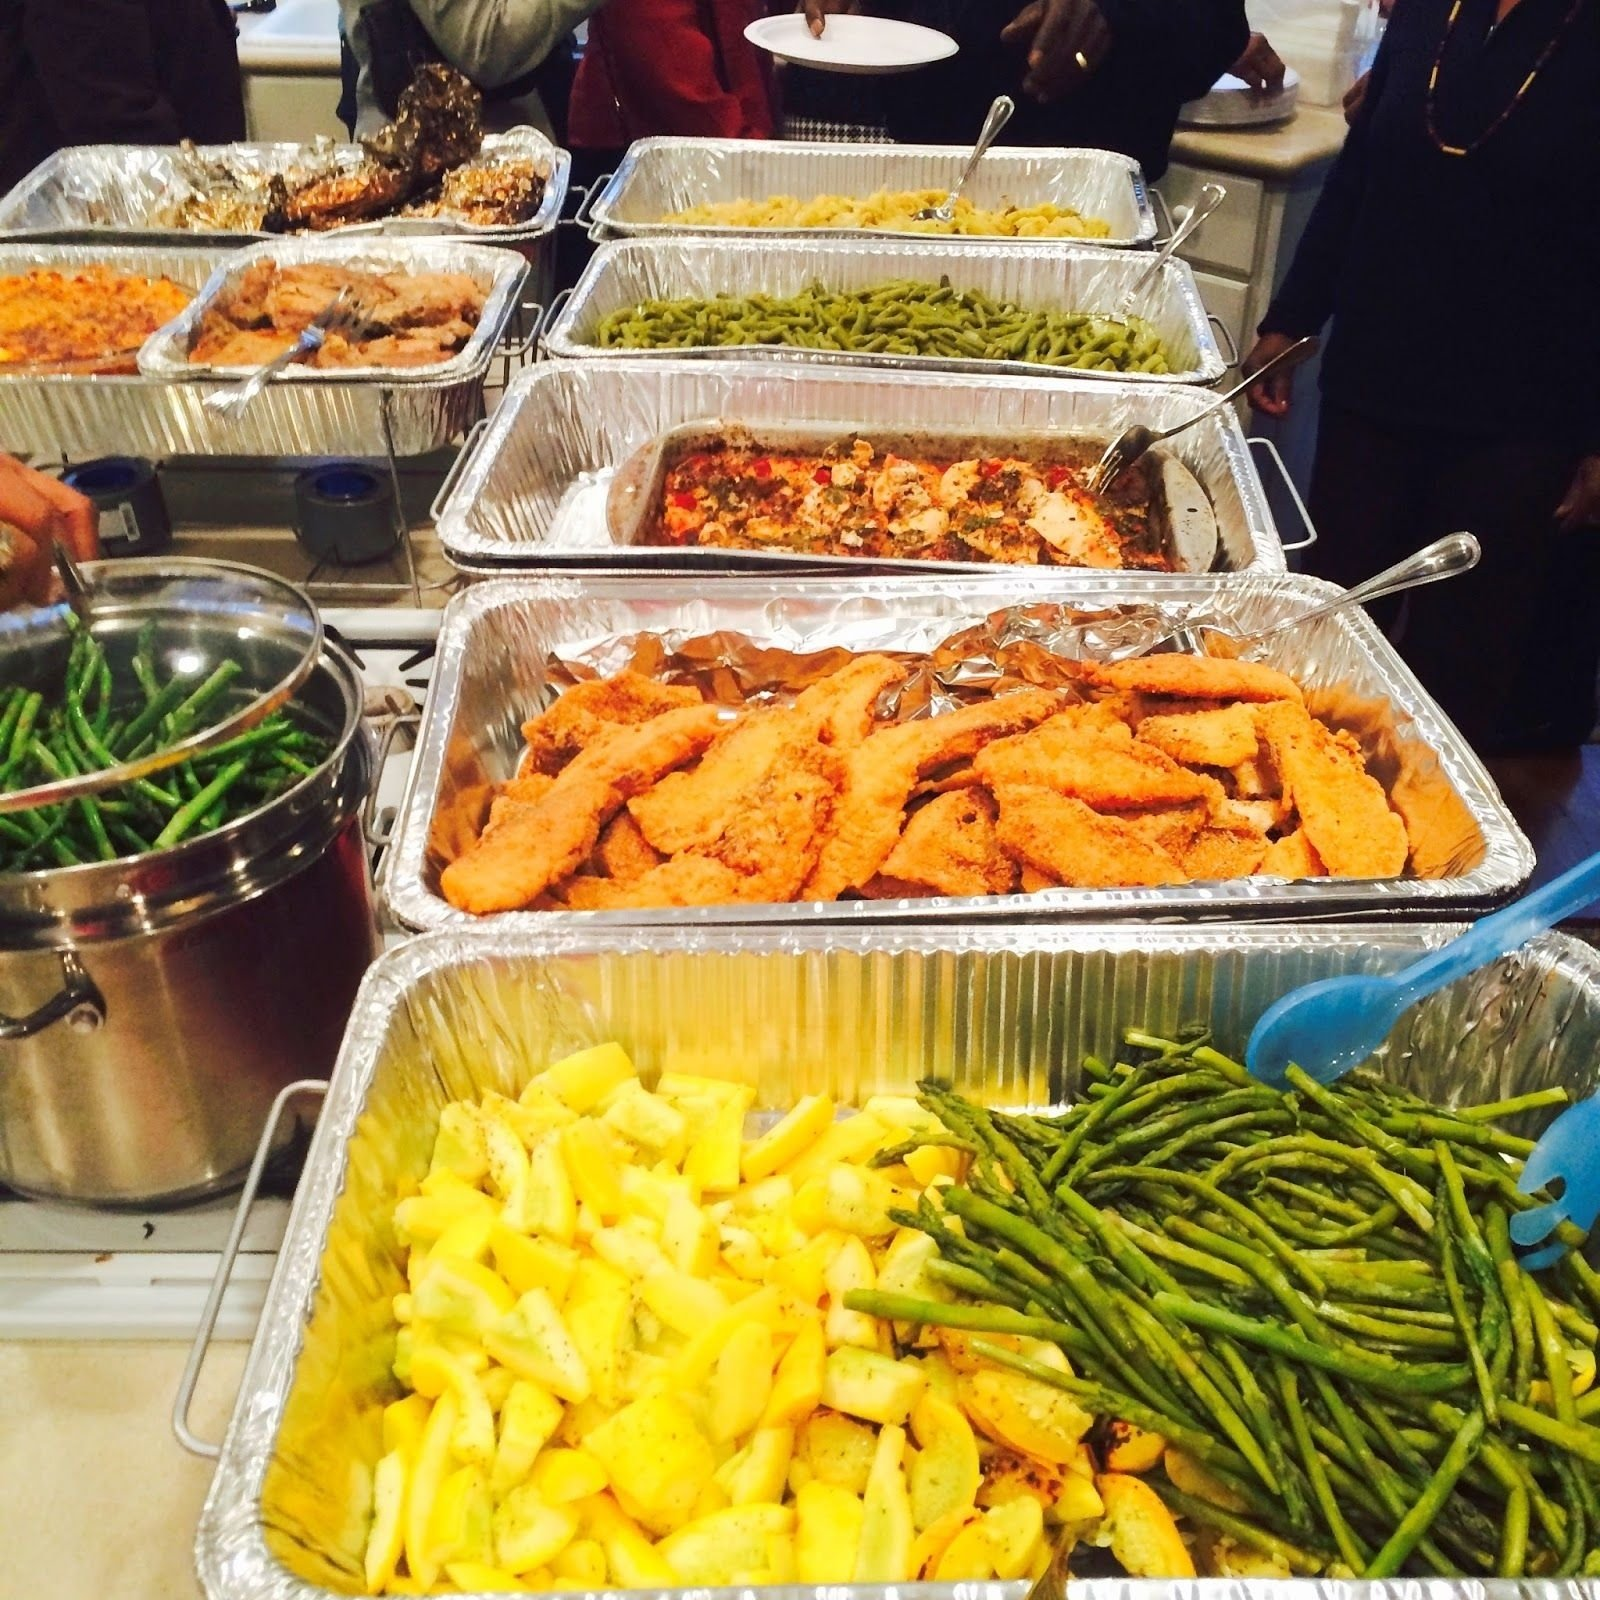 10 Most Recommended Camping Dinner Ideas For Large Groups cooking a diverse meal for a large group on a budget forever i 1 2021